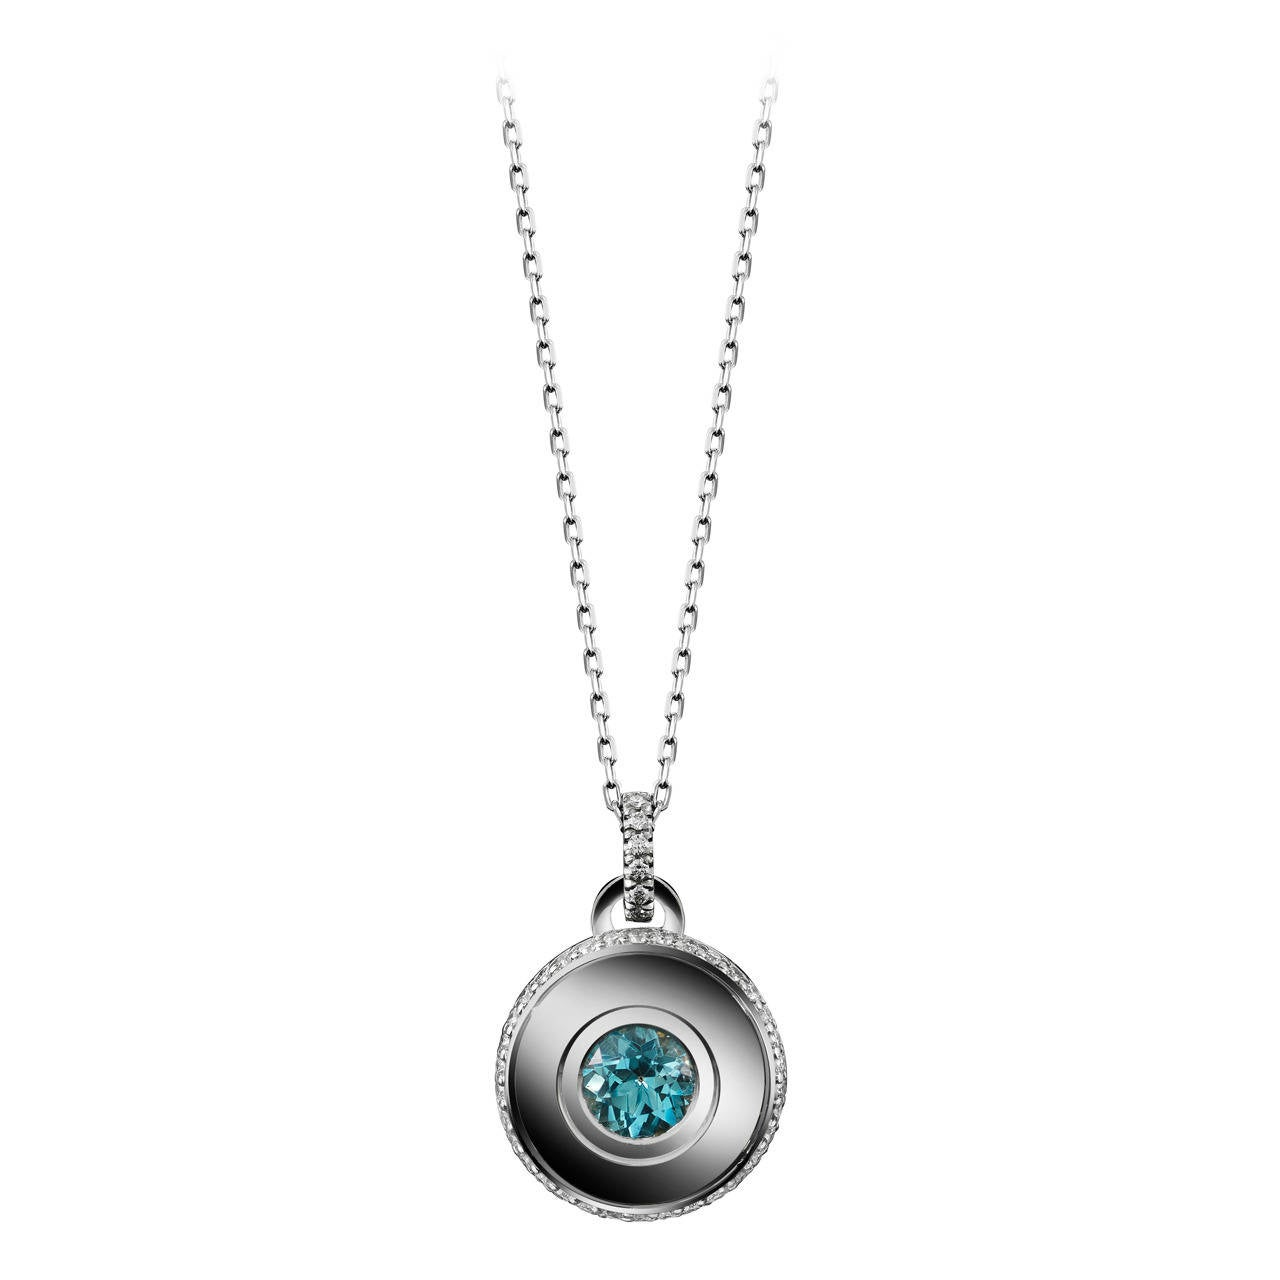 Alexandra Mor Brilliant-Cut Aquamarine and Diamond March Birthstone Pendant